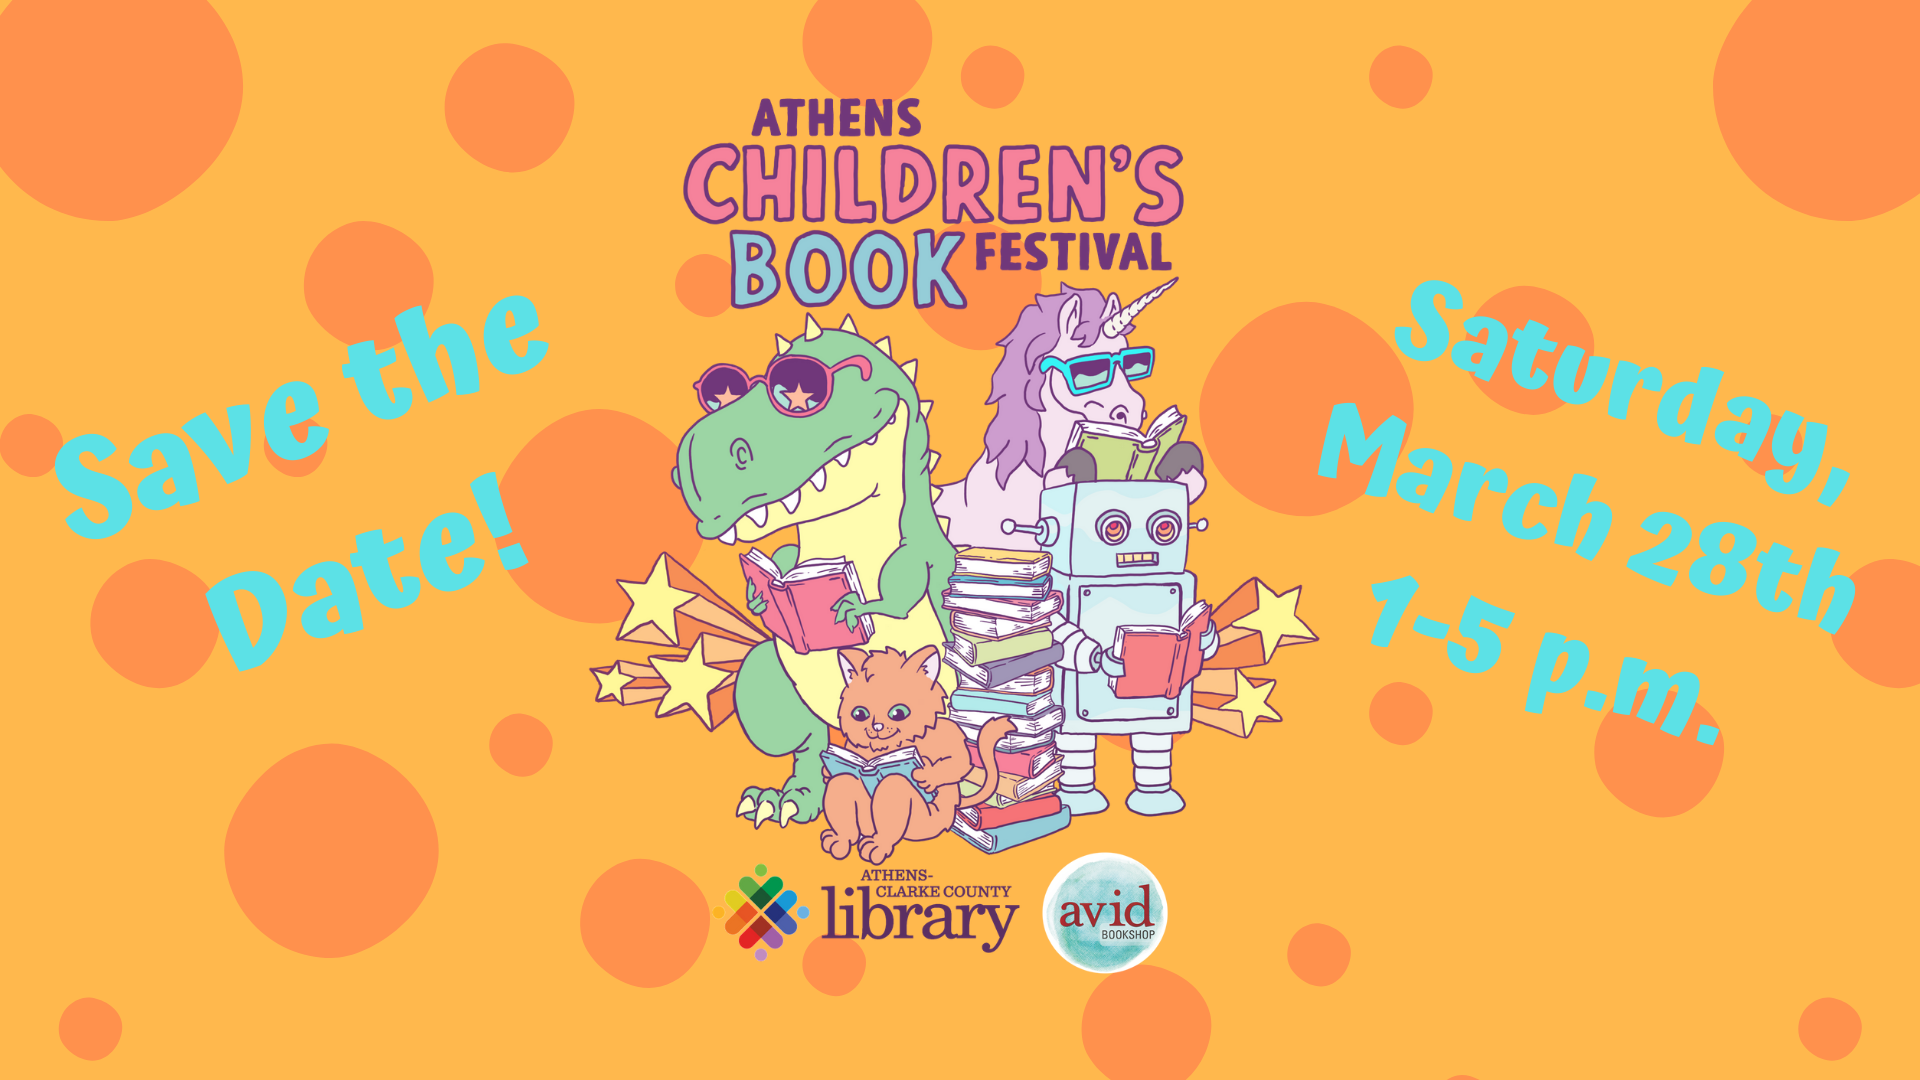 athens childrens book festival